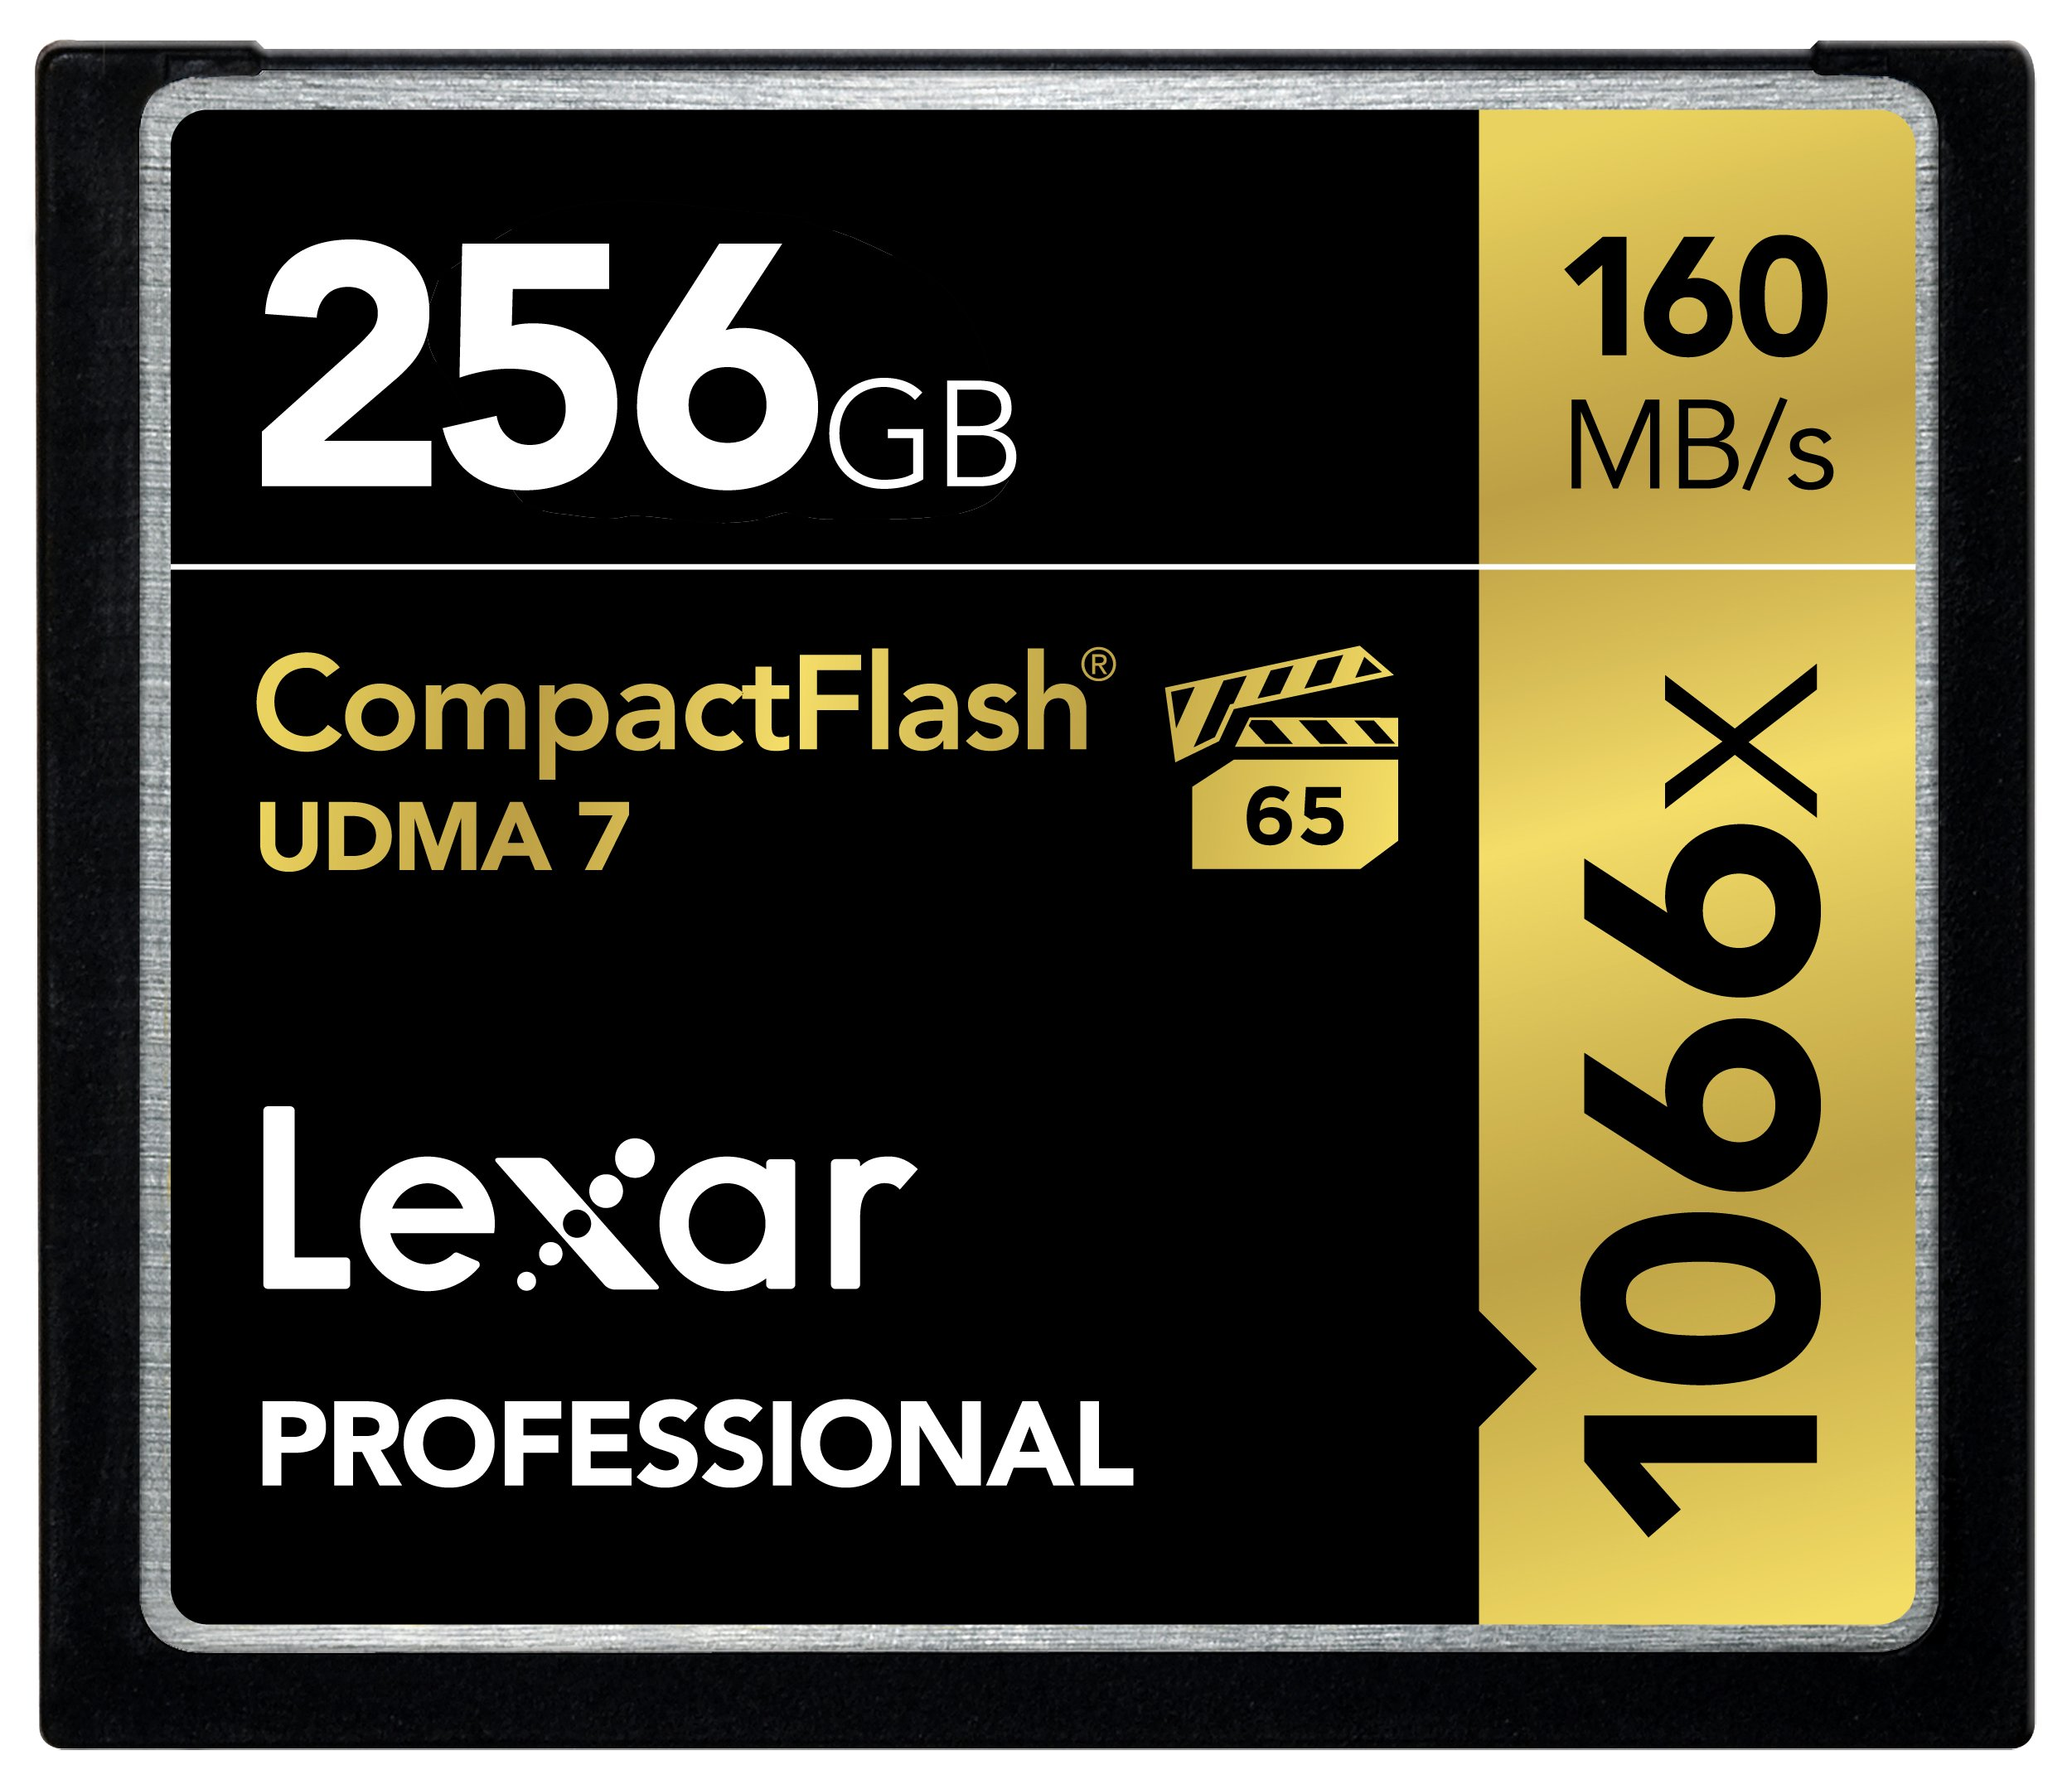 Lexar Professional 1066 x 256GB VPG-65 CompactFlash card (Up to 160MB/s Read) LCF256CRBNA1066 by Lexar